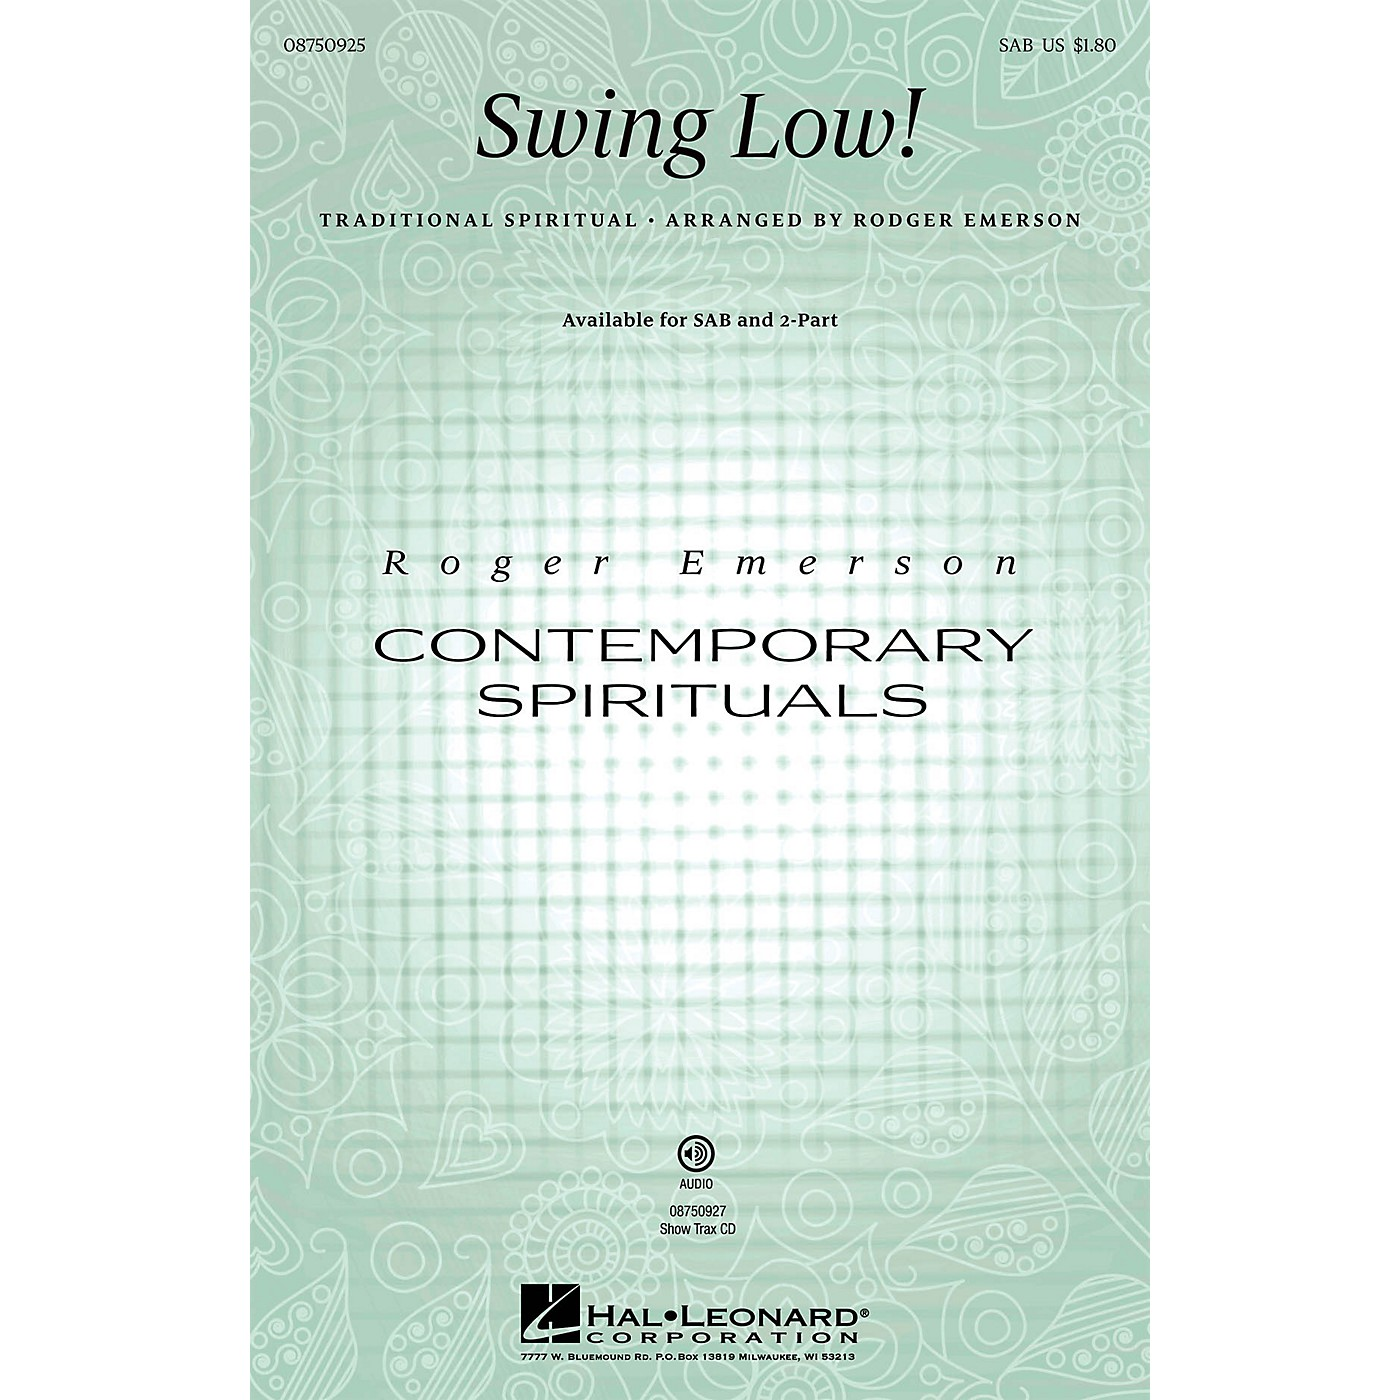 Hal Leonard Swing Low! 2-Part Arranged by Roger Emerson thumbnail